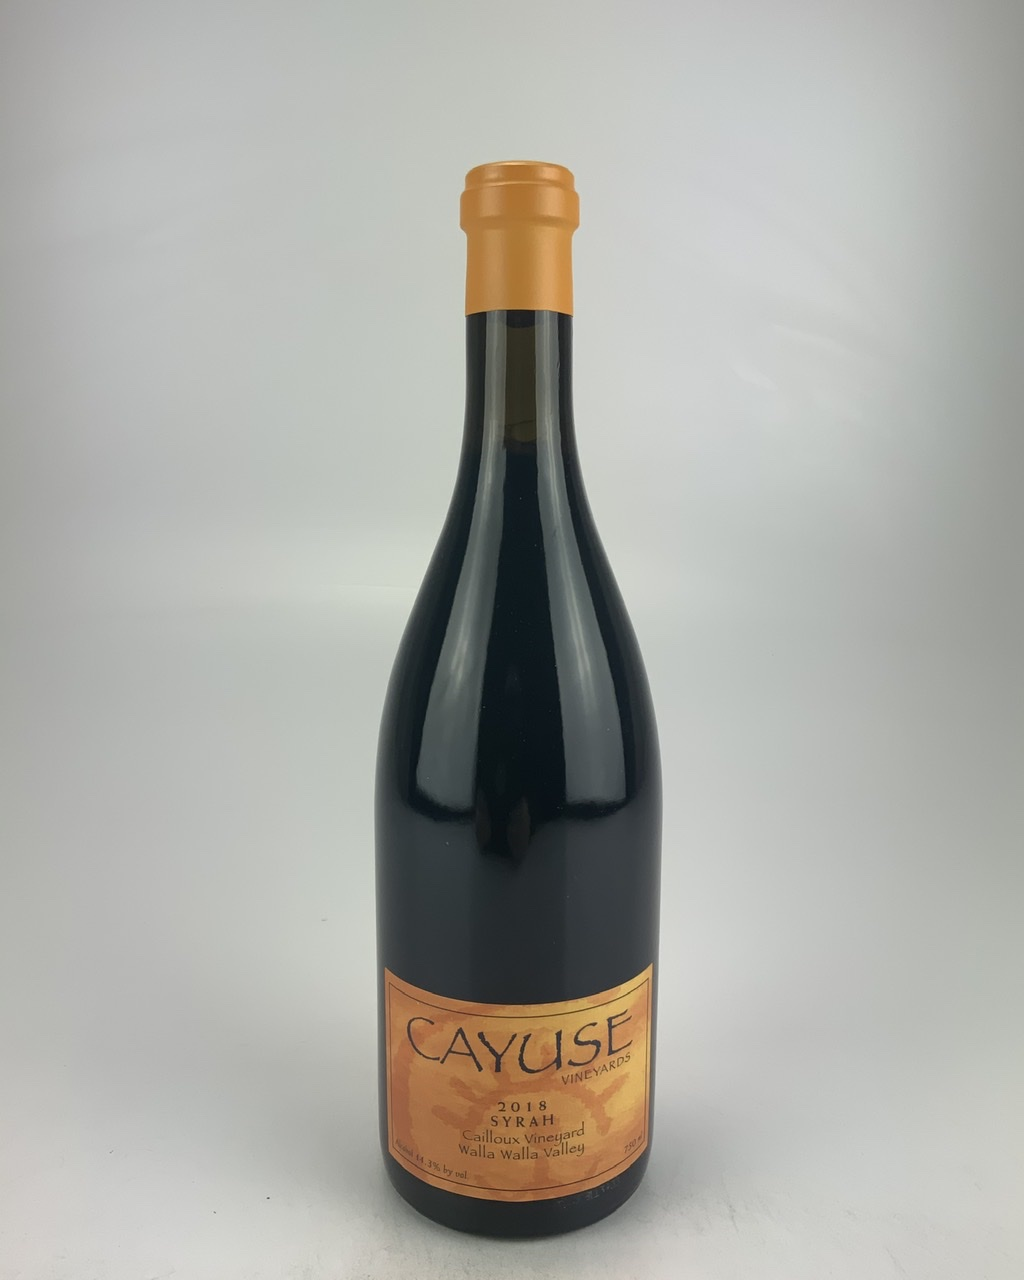 2018 Cayuse Syrah Cailloux Vineyard, Walla Walla Valley